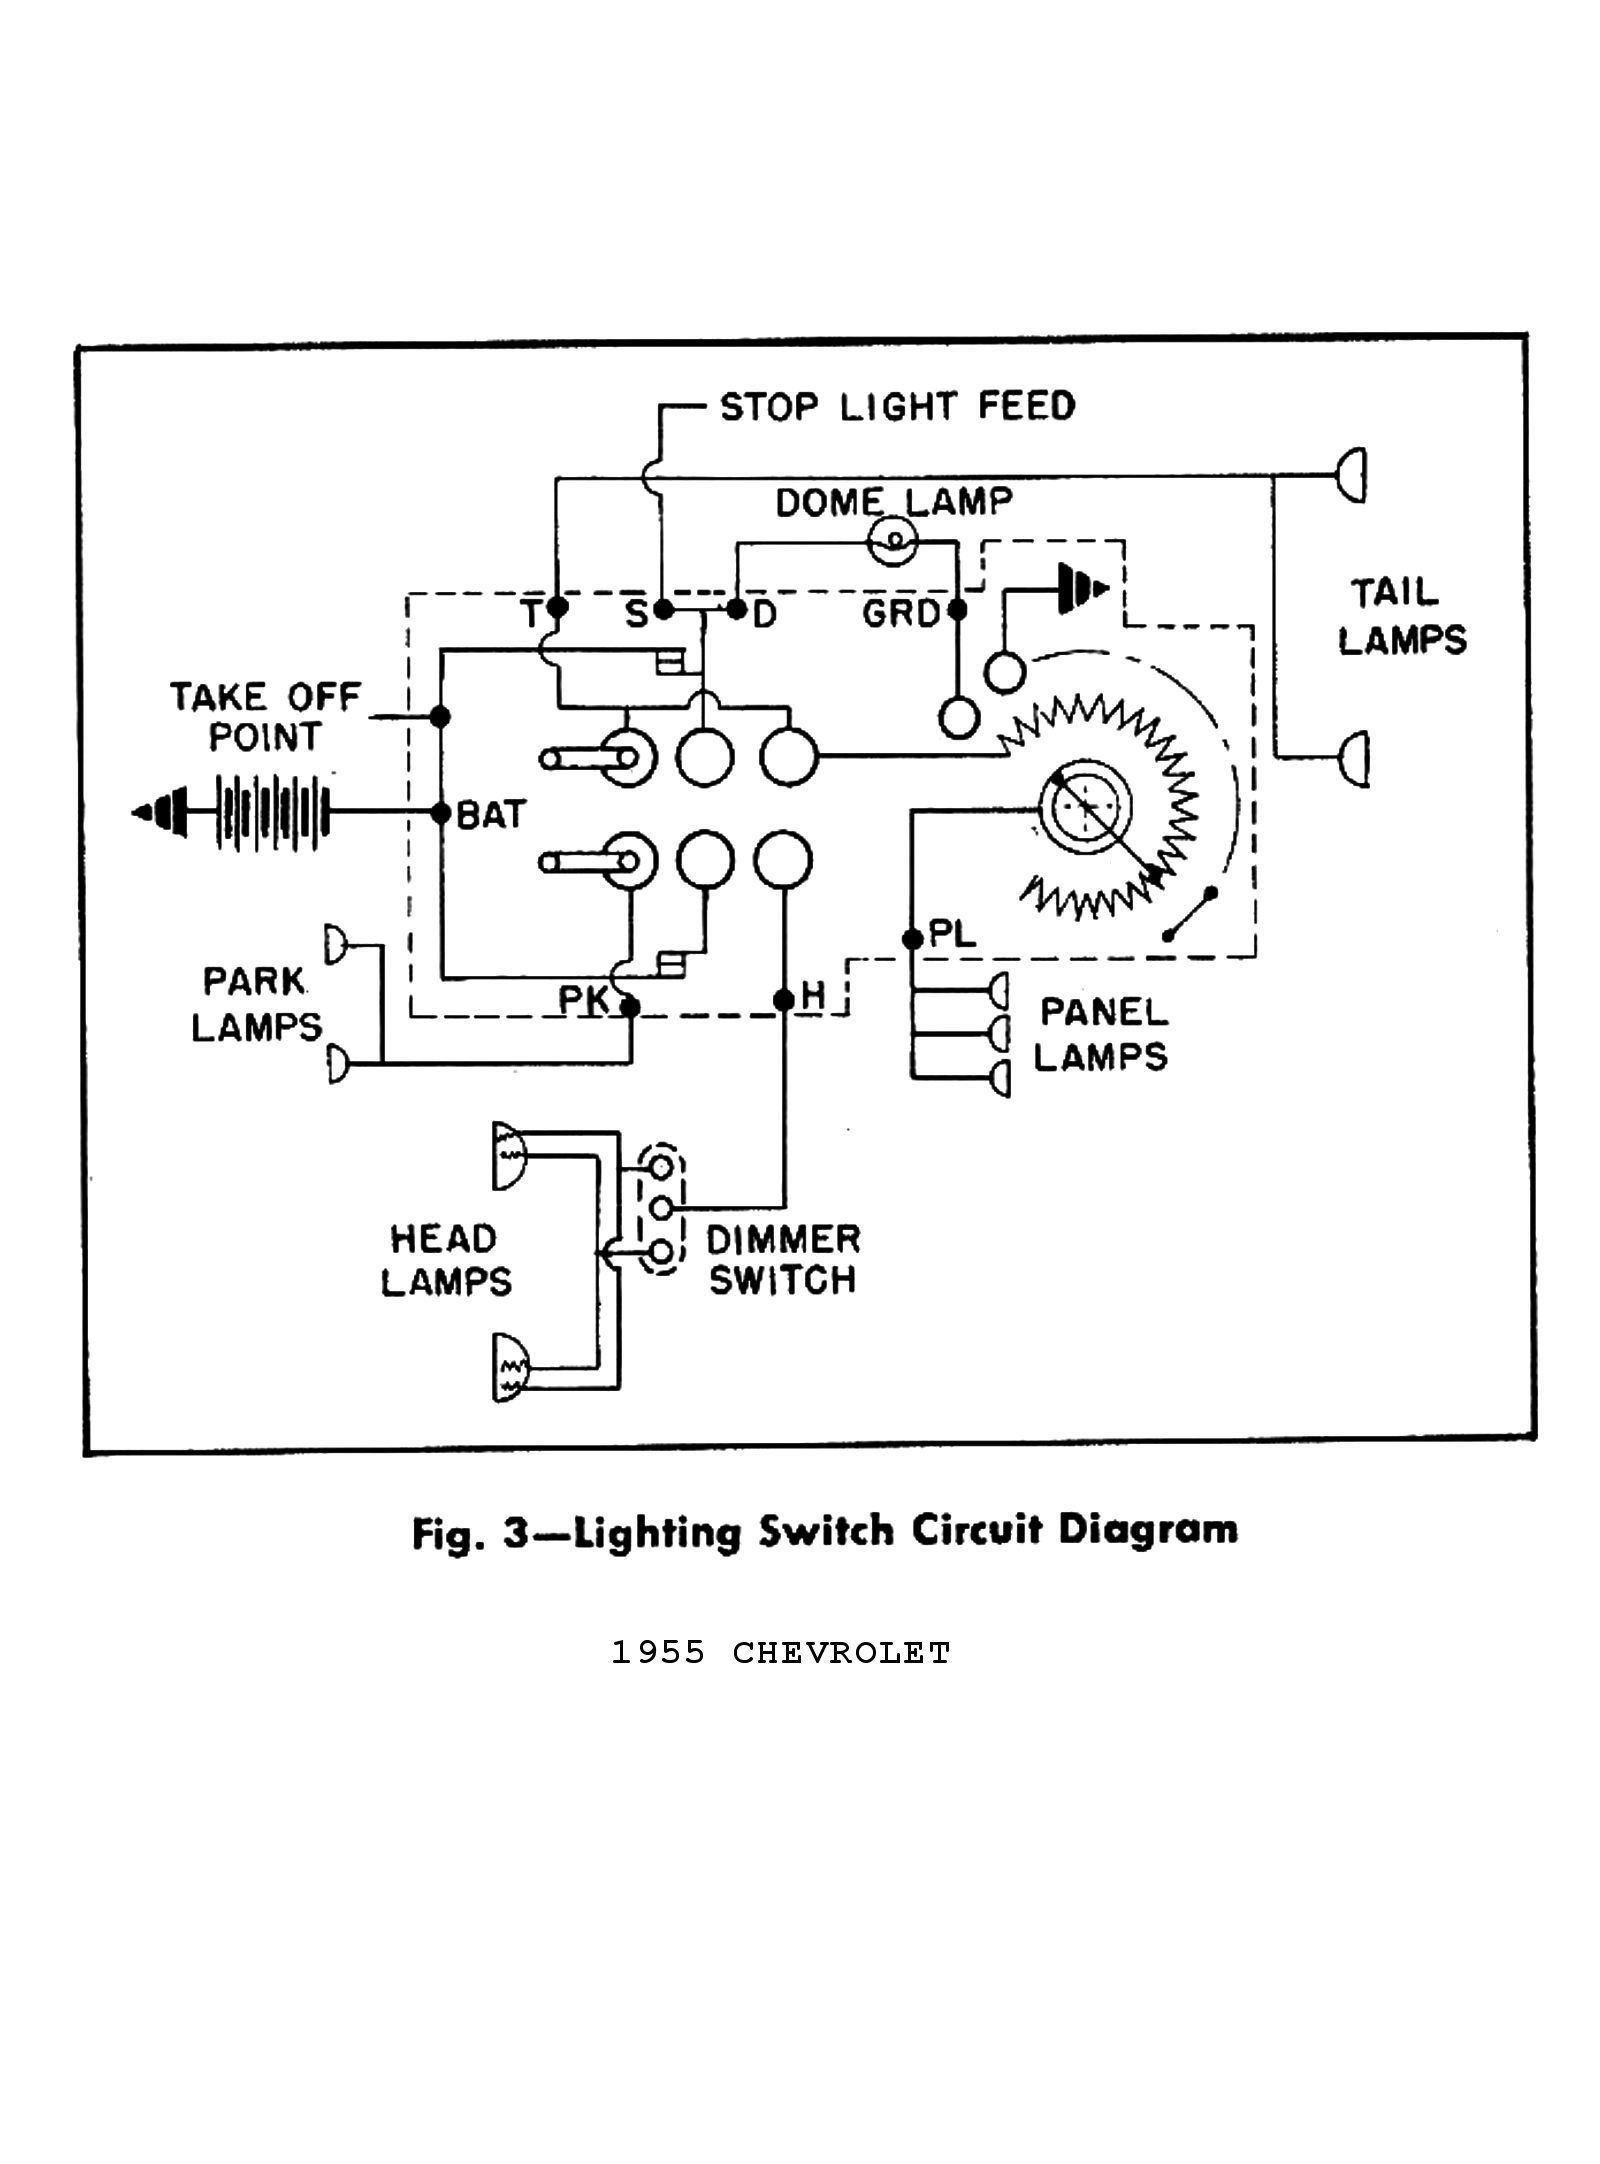 universal ignition switch wiring diagram inspirational 1955 chevy of 1957 Chevy Ignition Switch Diagram universal ignition switch wiring diagram inspirational 1955 chevy of for 1955 chevy ignition switch wiring diagram